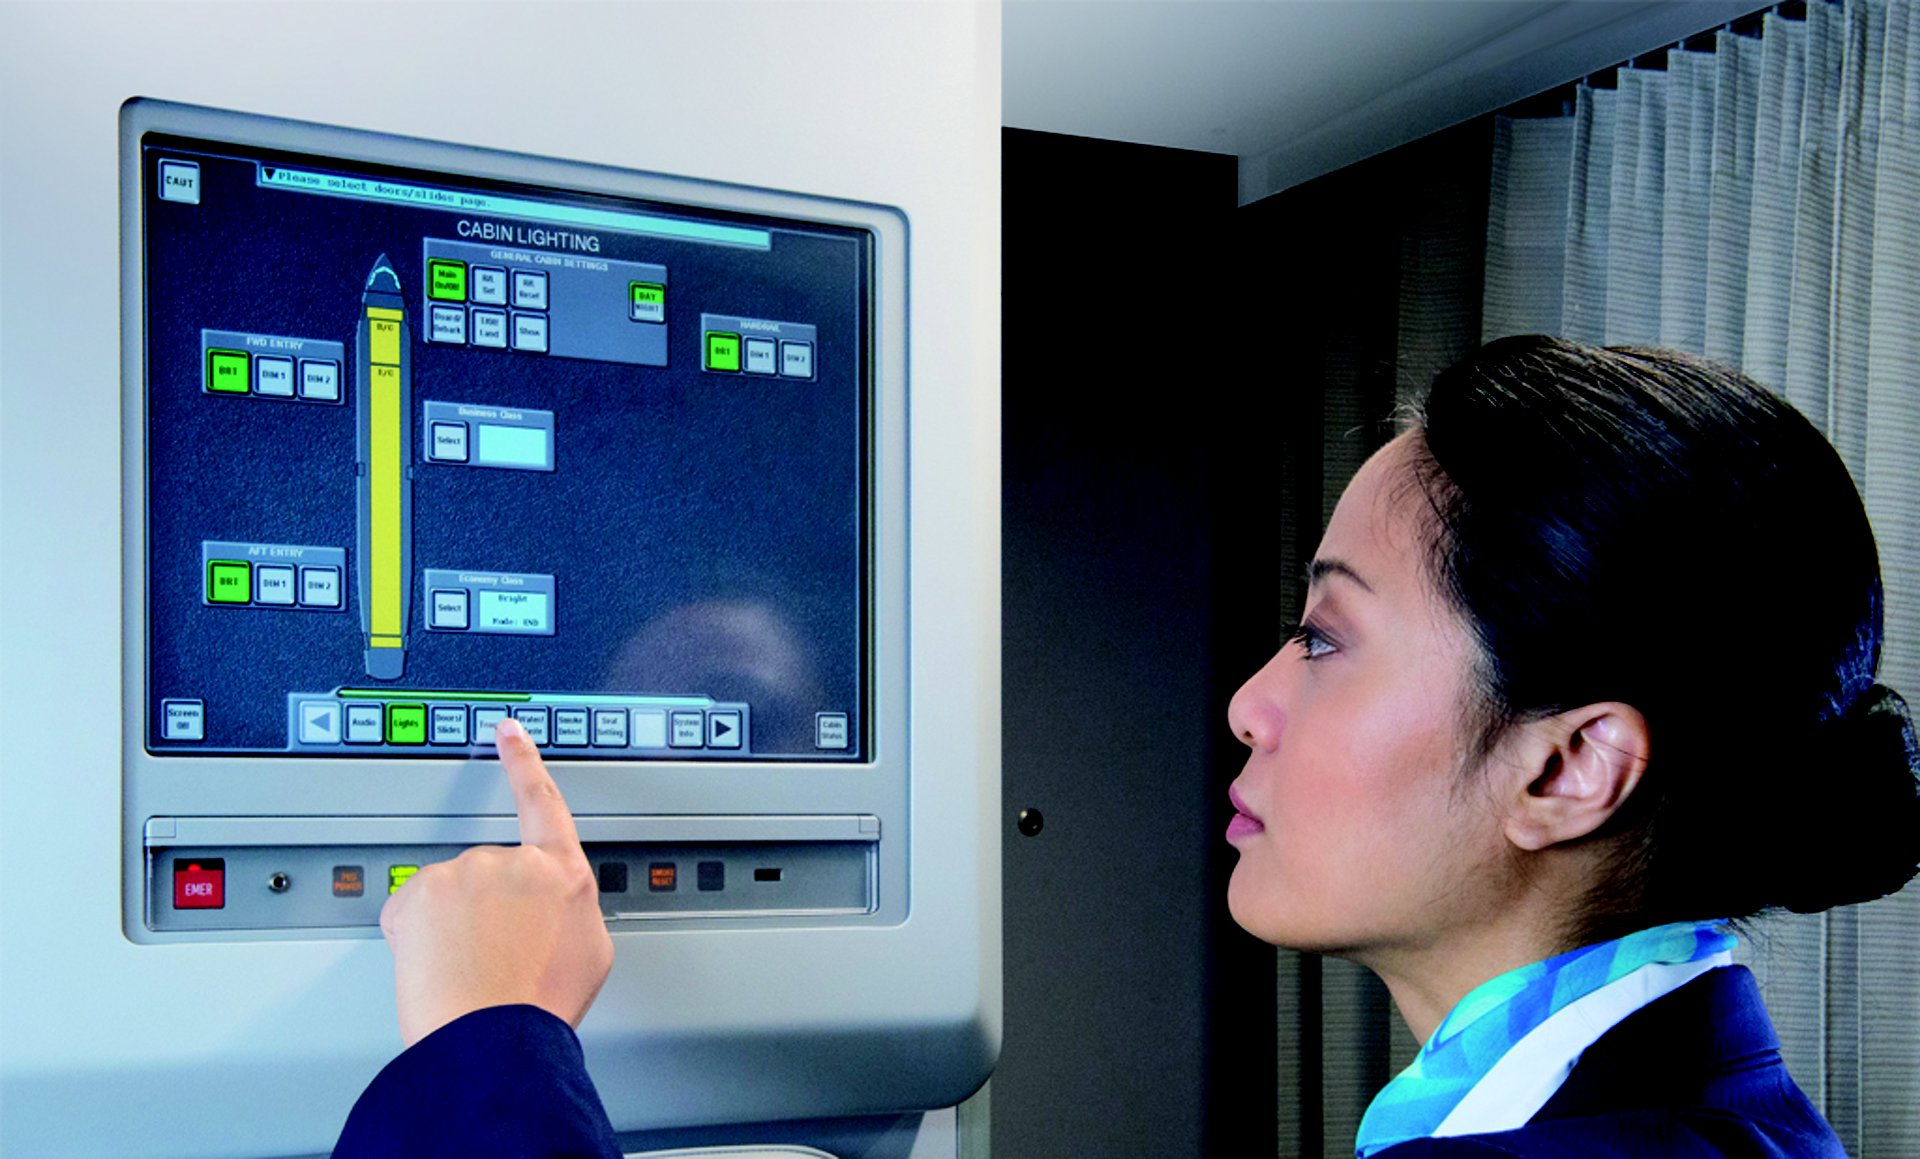 Cabin crew benefit from the efficiency and accessibility provided by CIDS, which enables them to monitor and control the system via several touch screen interfaces in the cabin